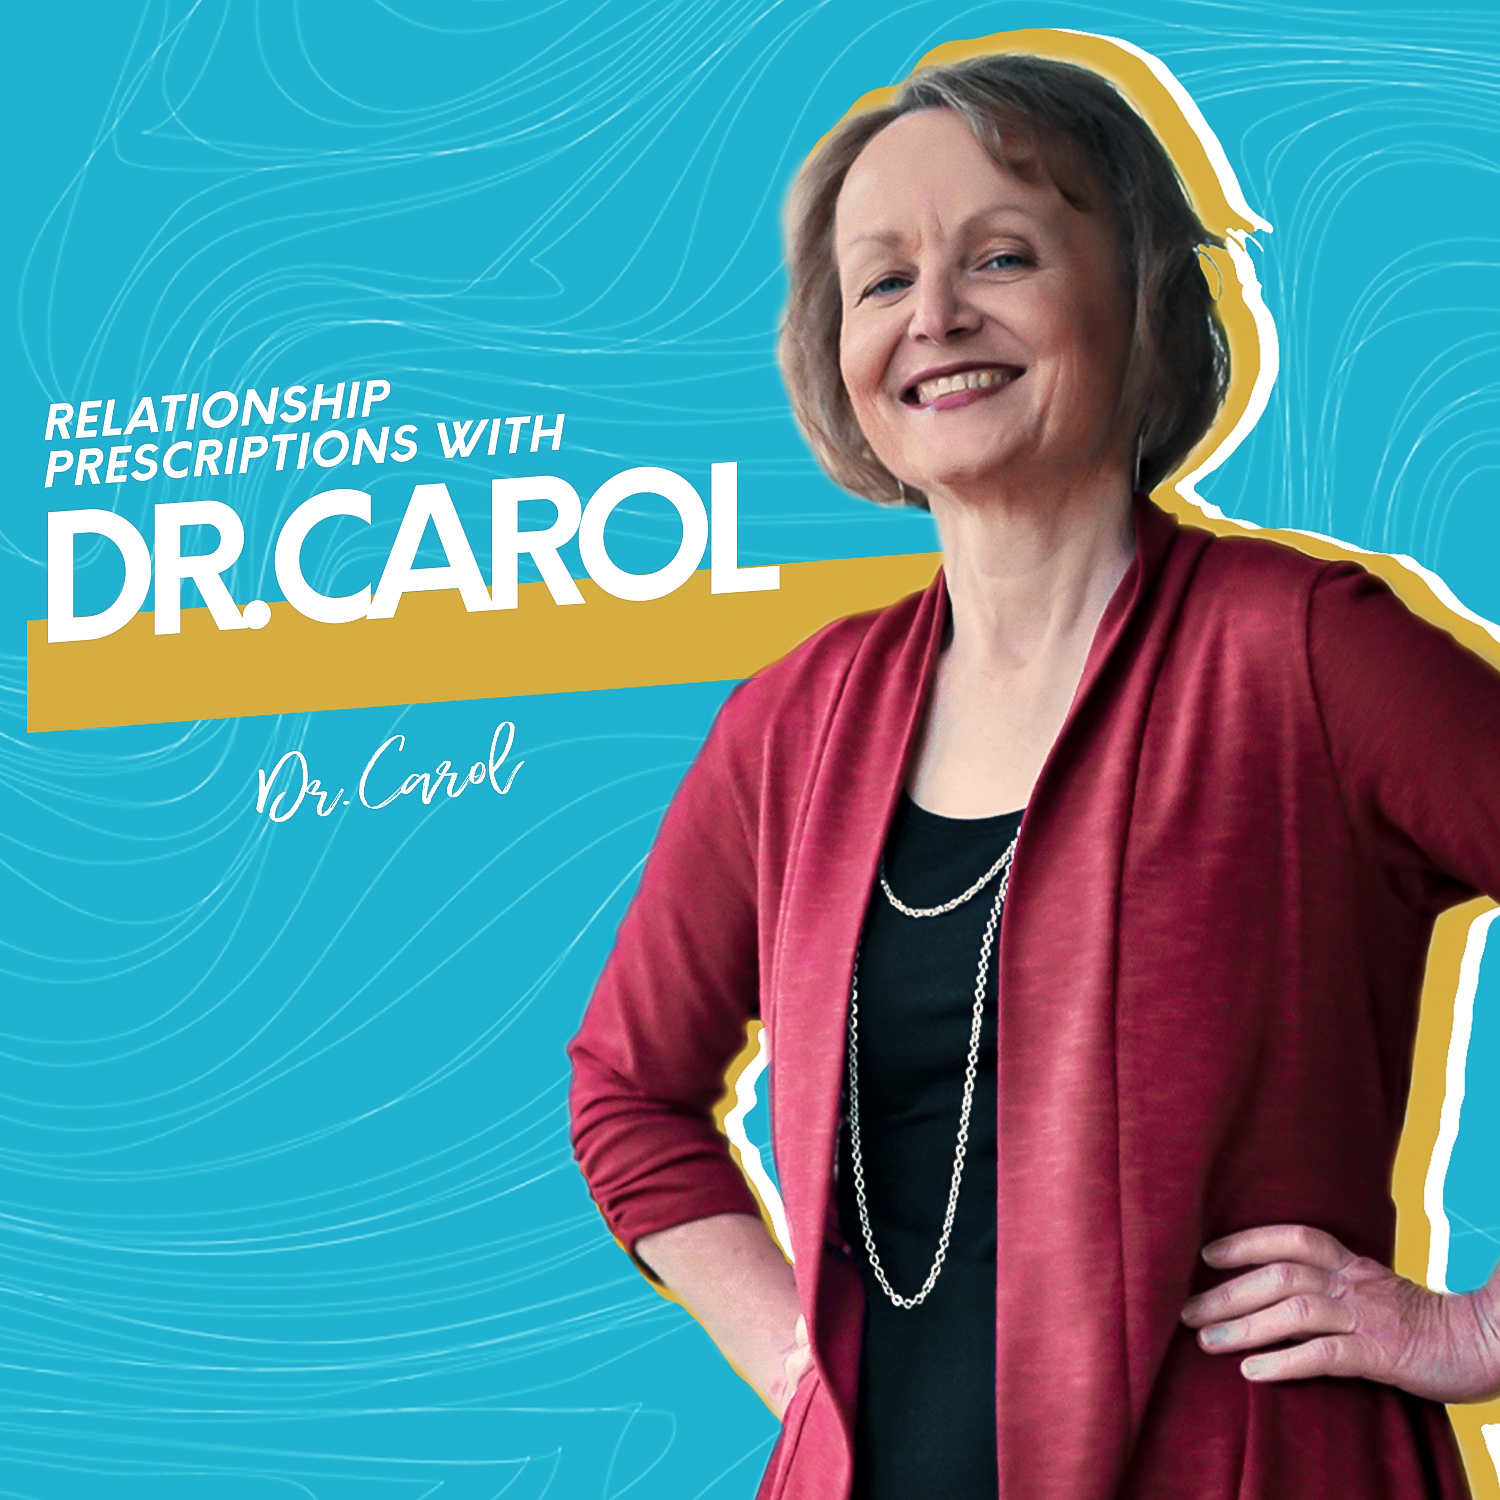 Relationship Prescriptions with Dr. Carol - How God Works through a Messy Marriage